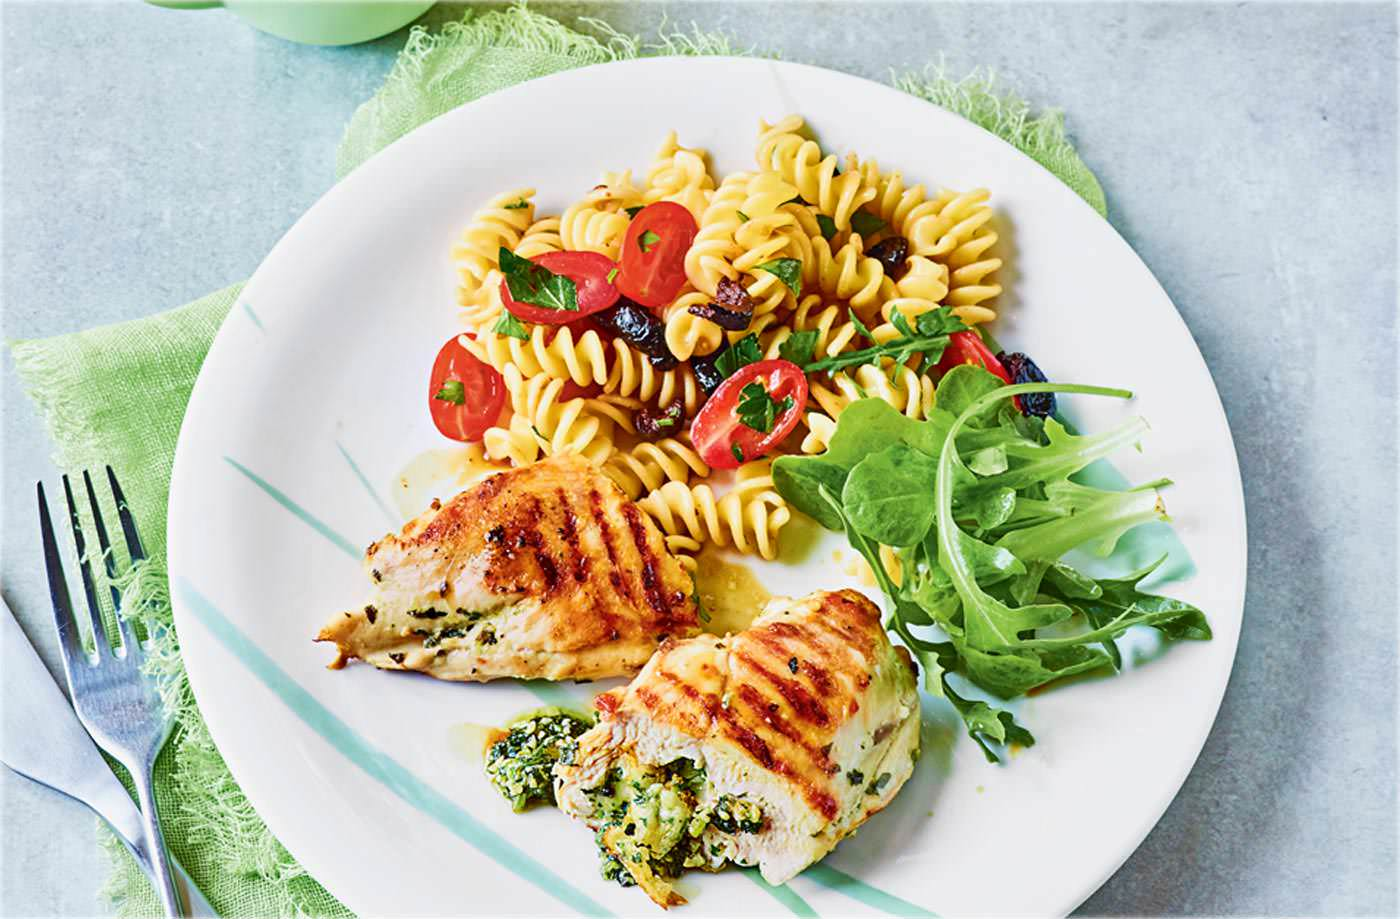 Basil and mozzarella stuffed chicken with pasta salad recipe